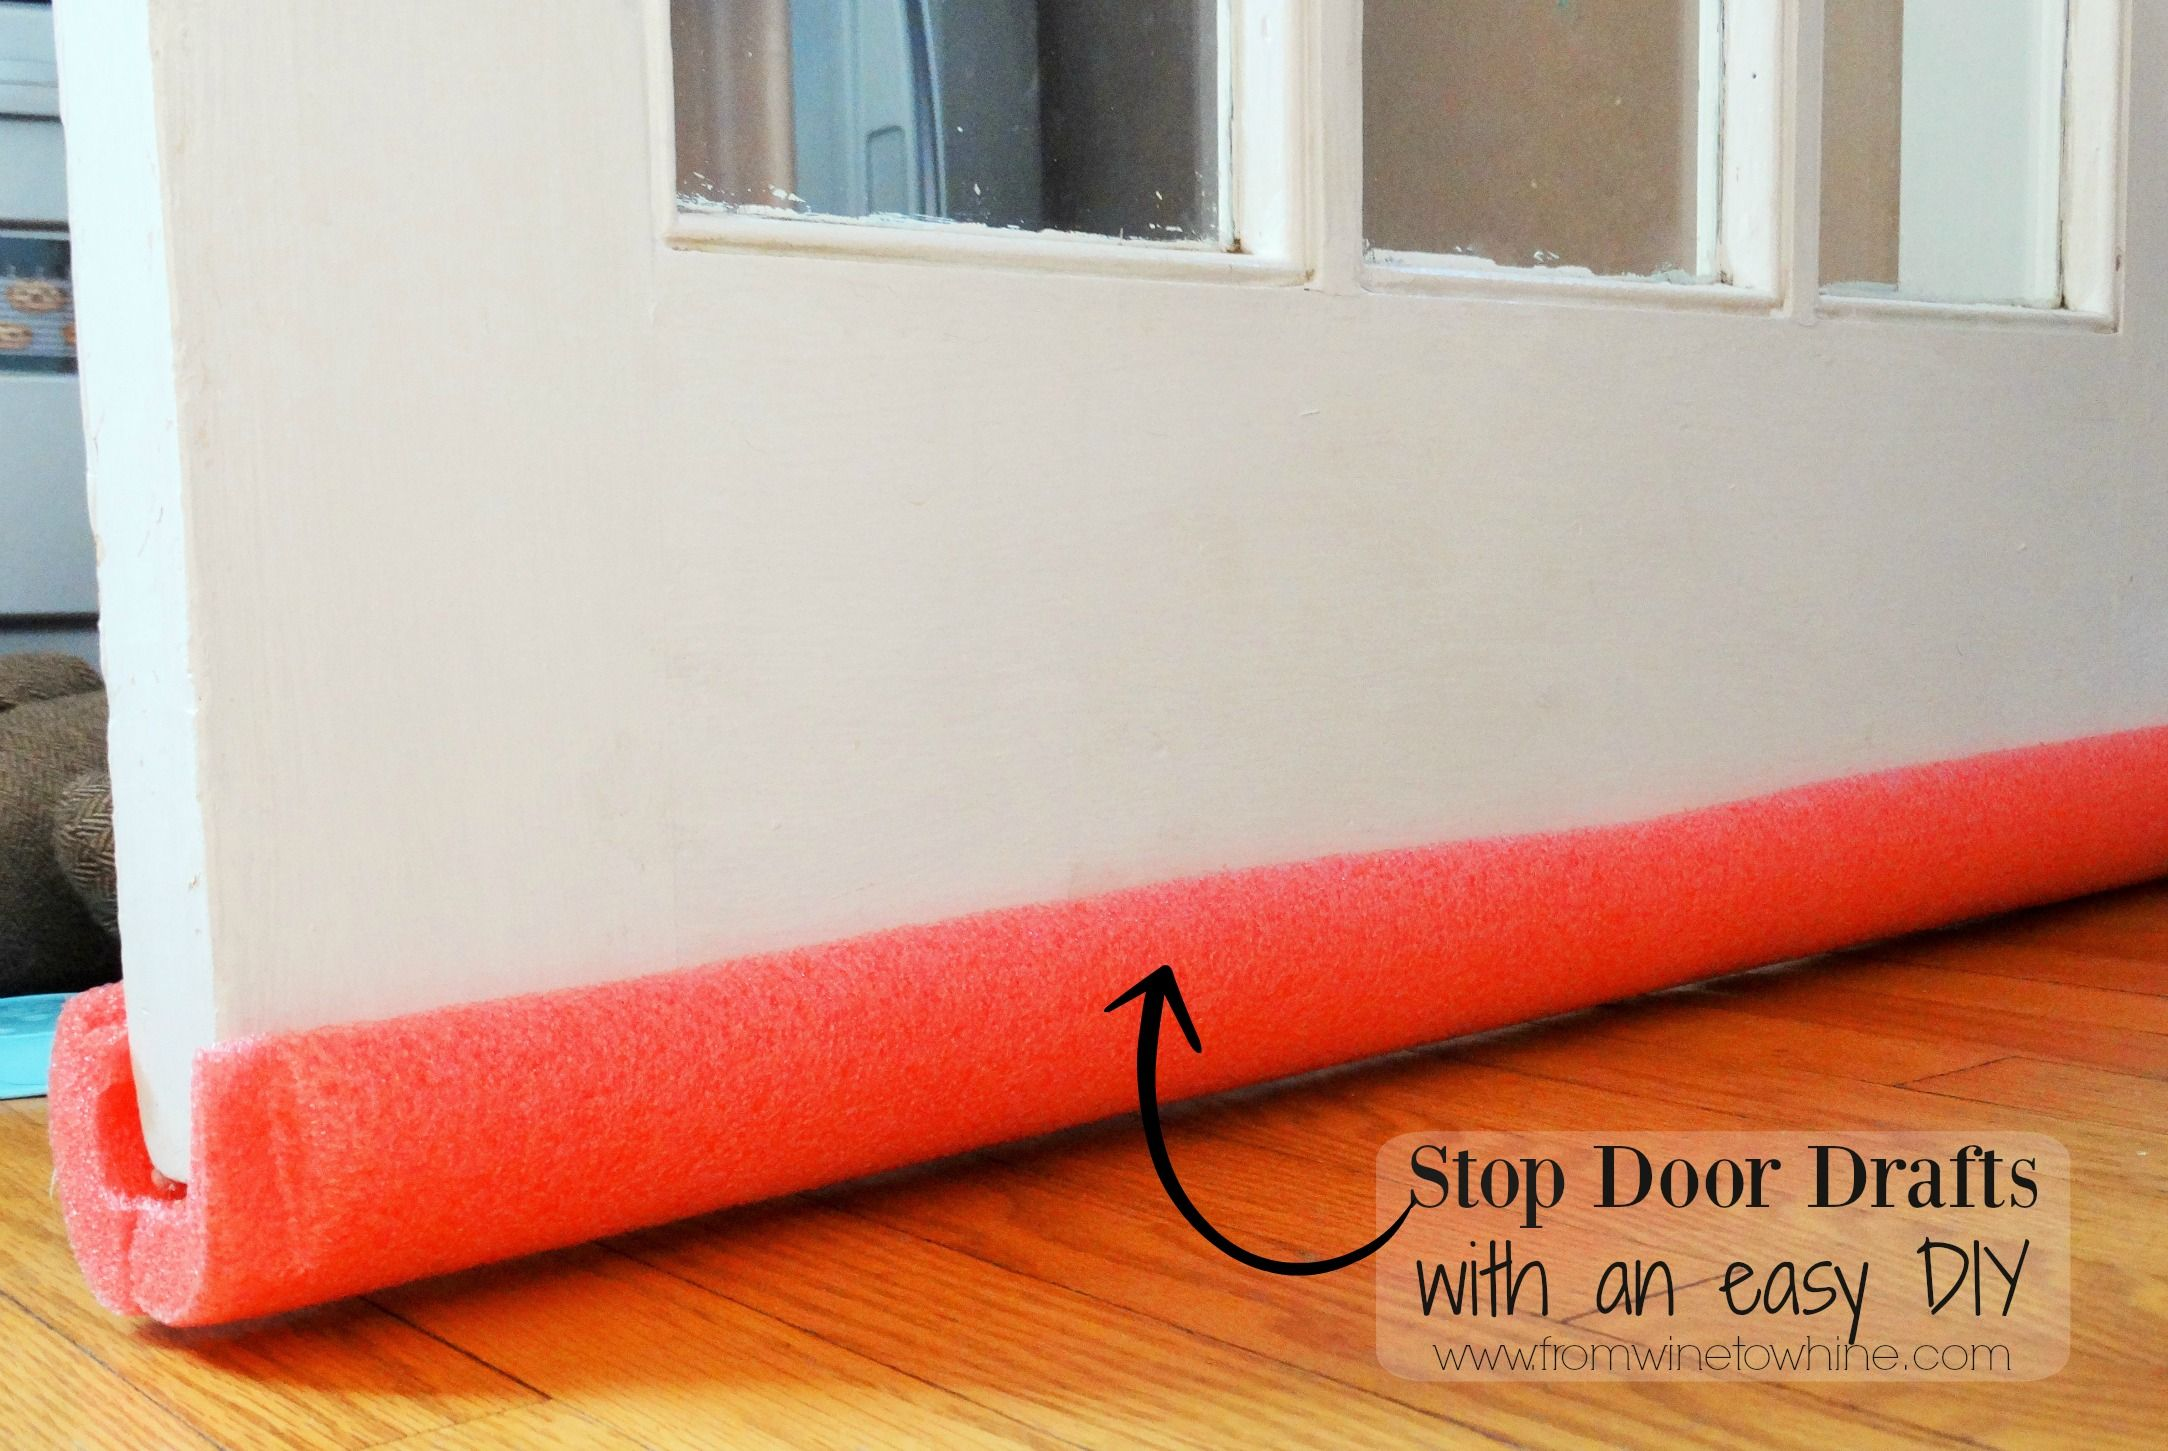 Stop Door Drafts Door Draft Draft Stopper Diy Door Draught Stopper